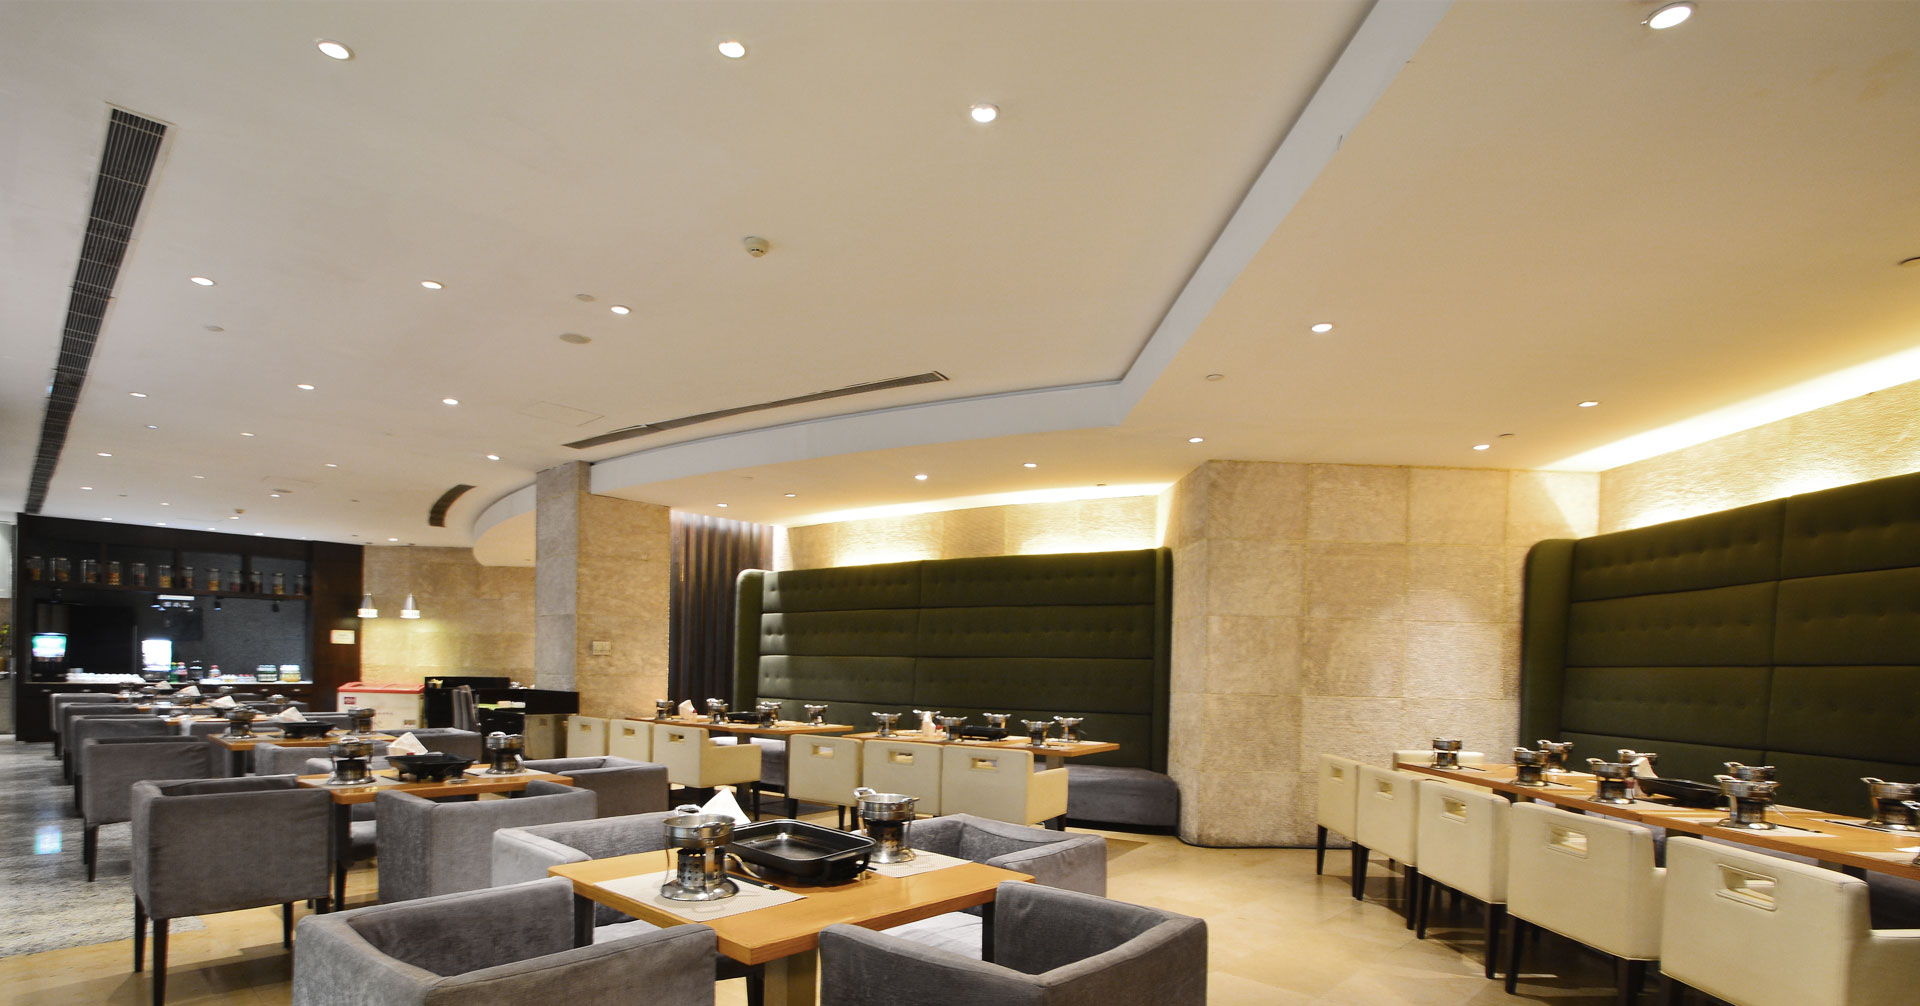 Restaurant Dimmable LED Downlight Fixture_06